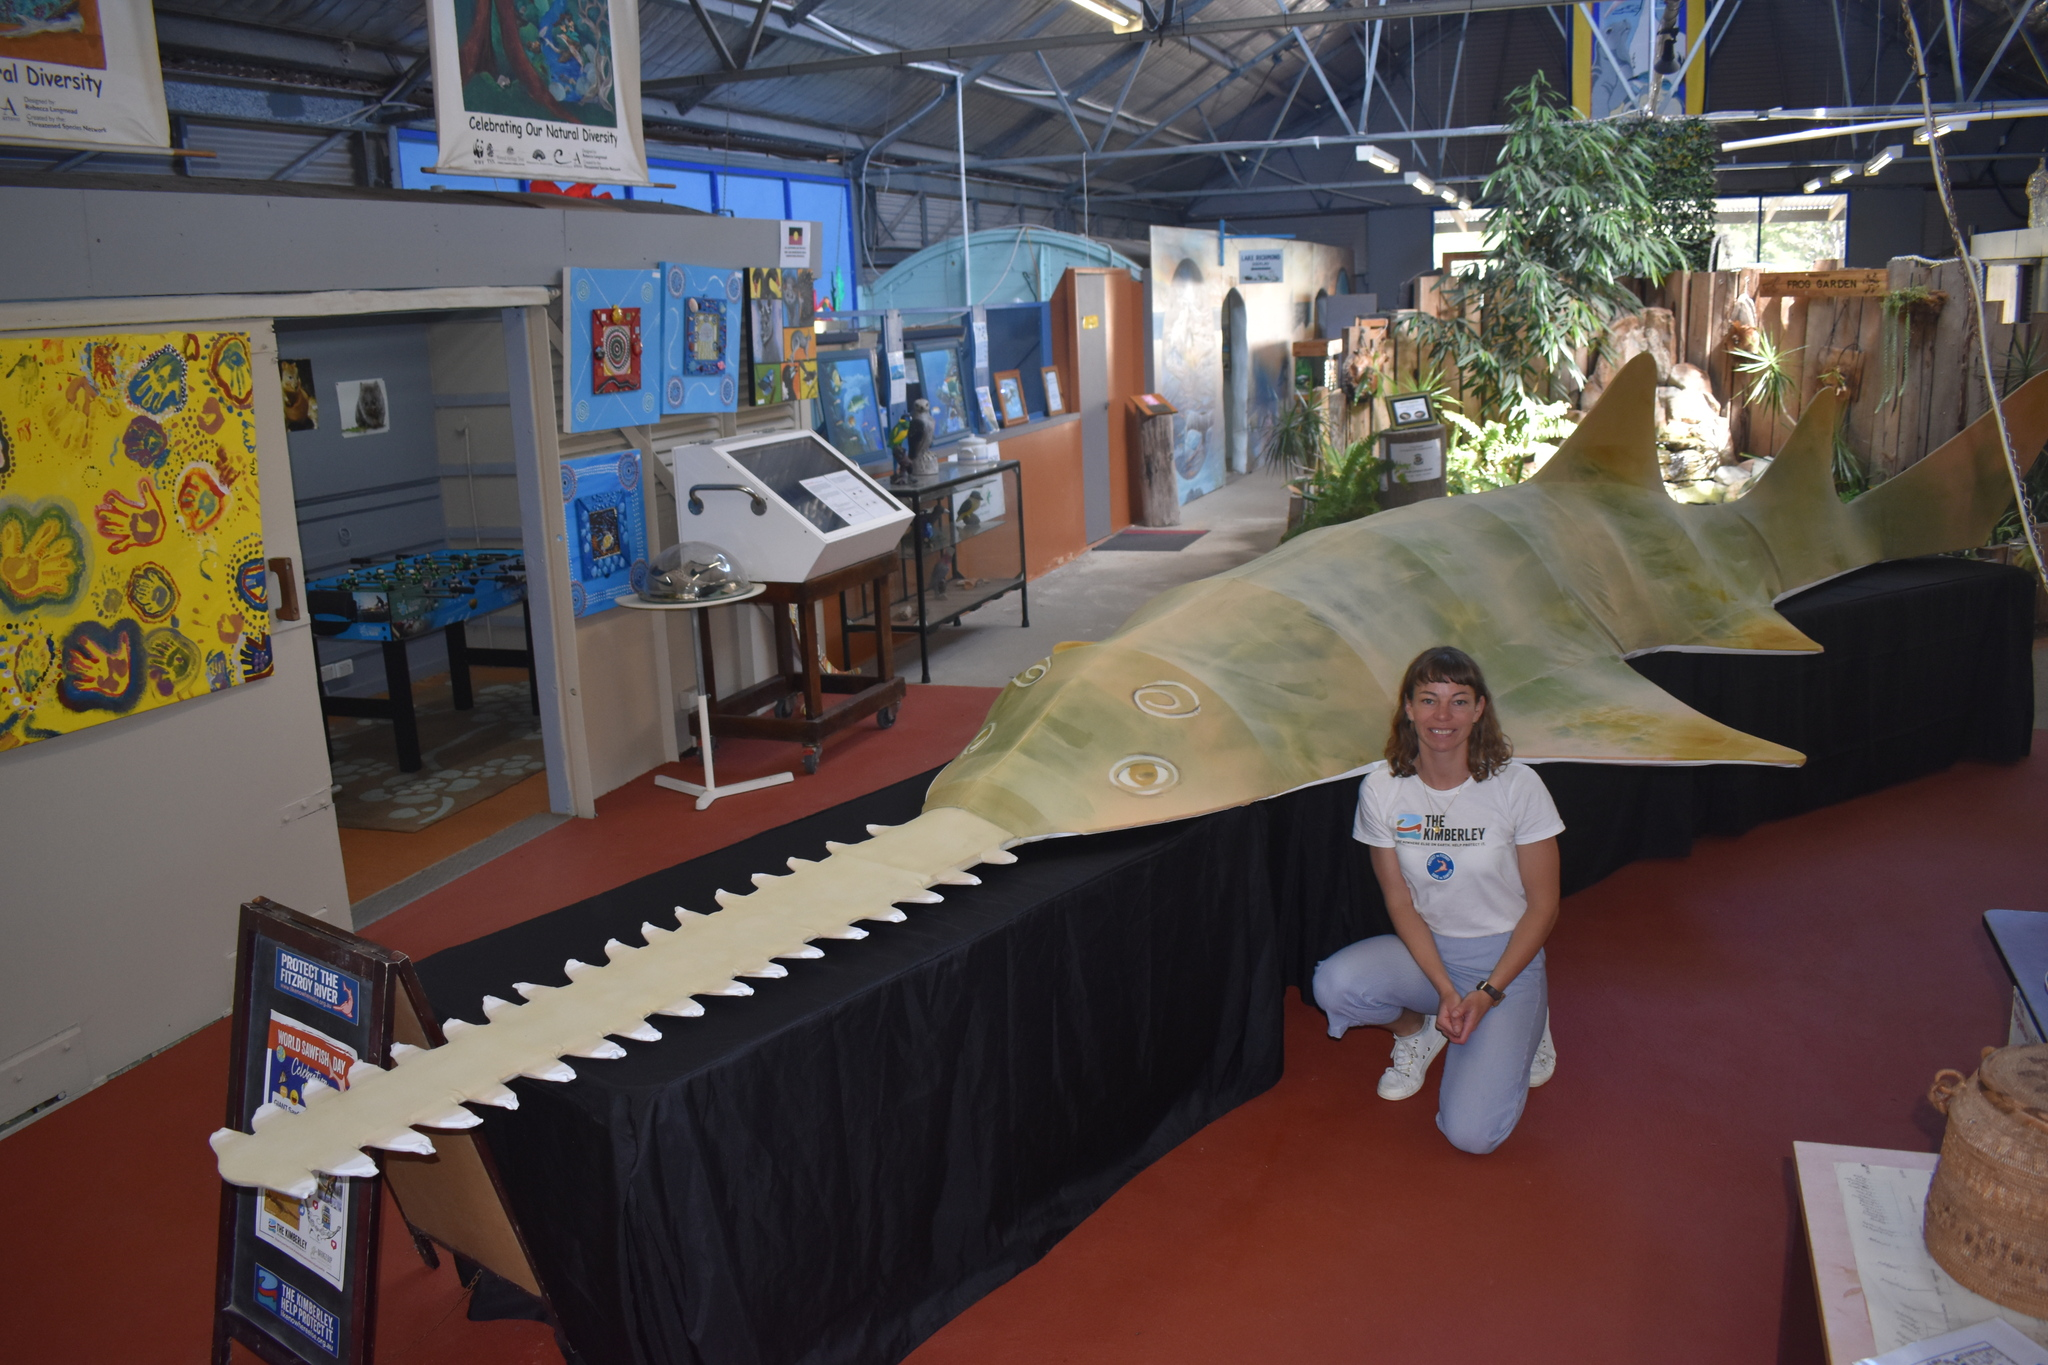 By popular demand the sawfish will stay in Rockingham for two more weeks.